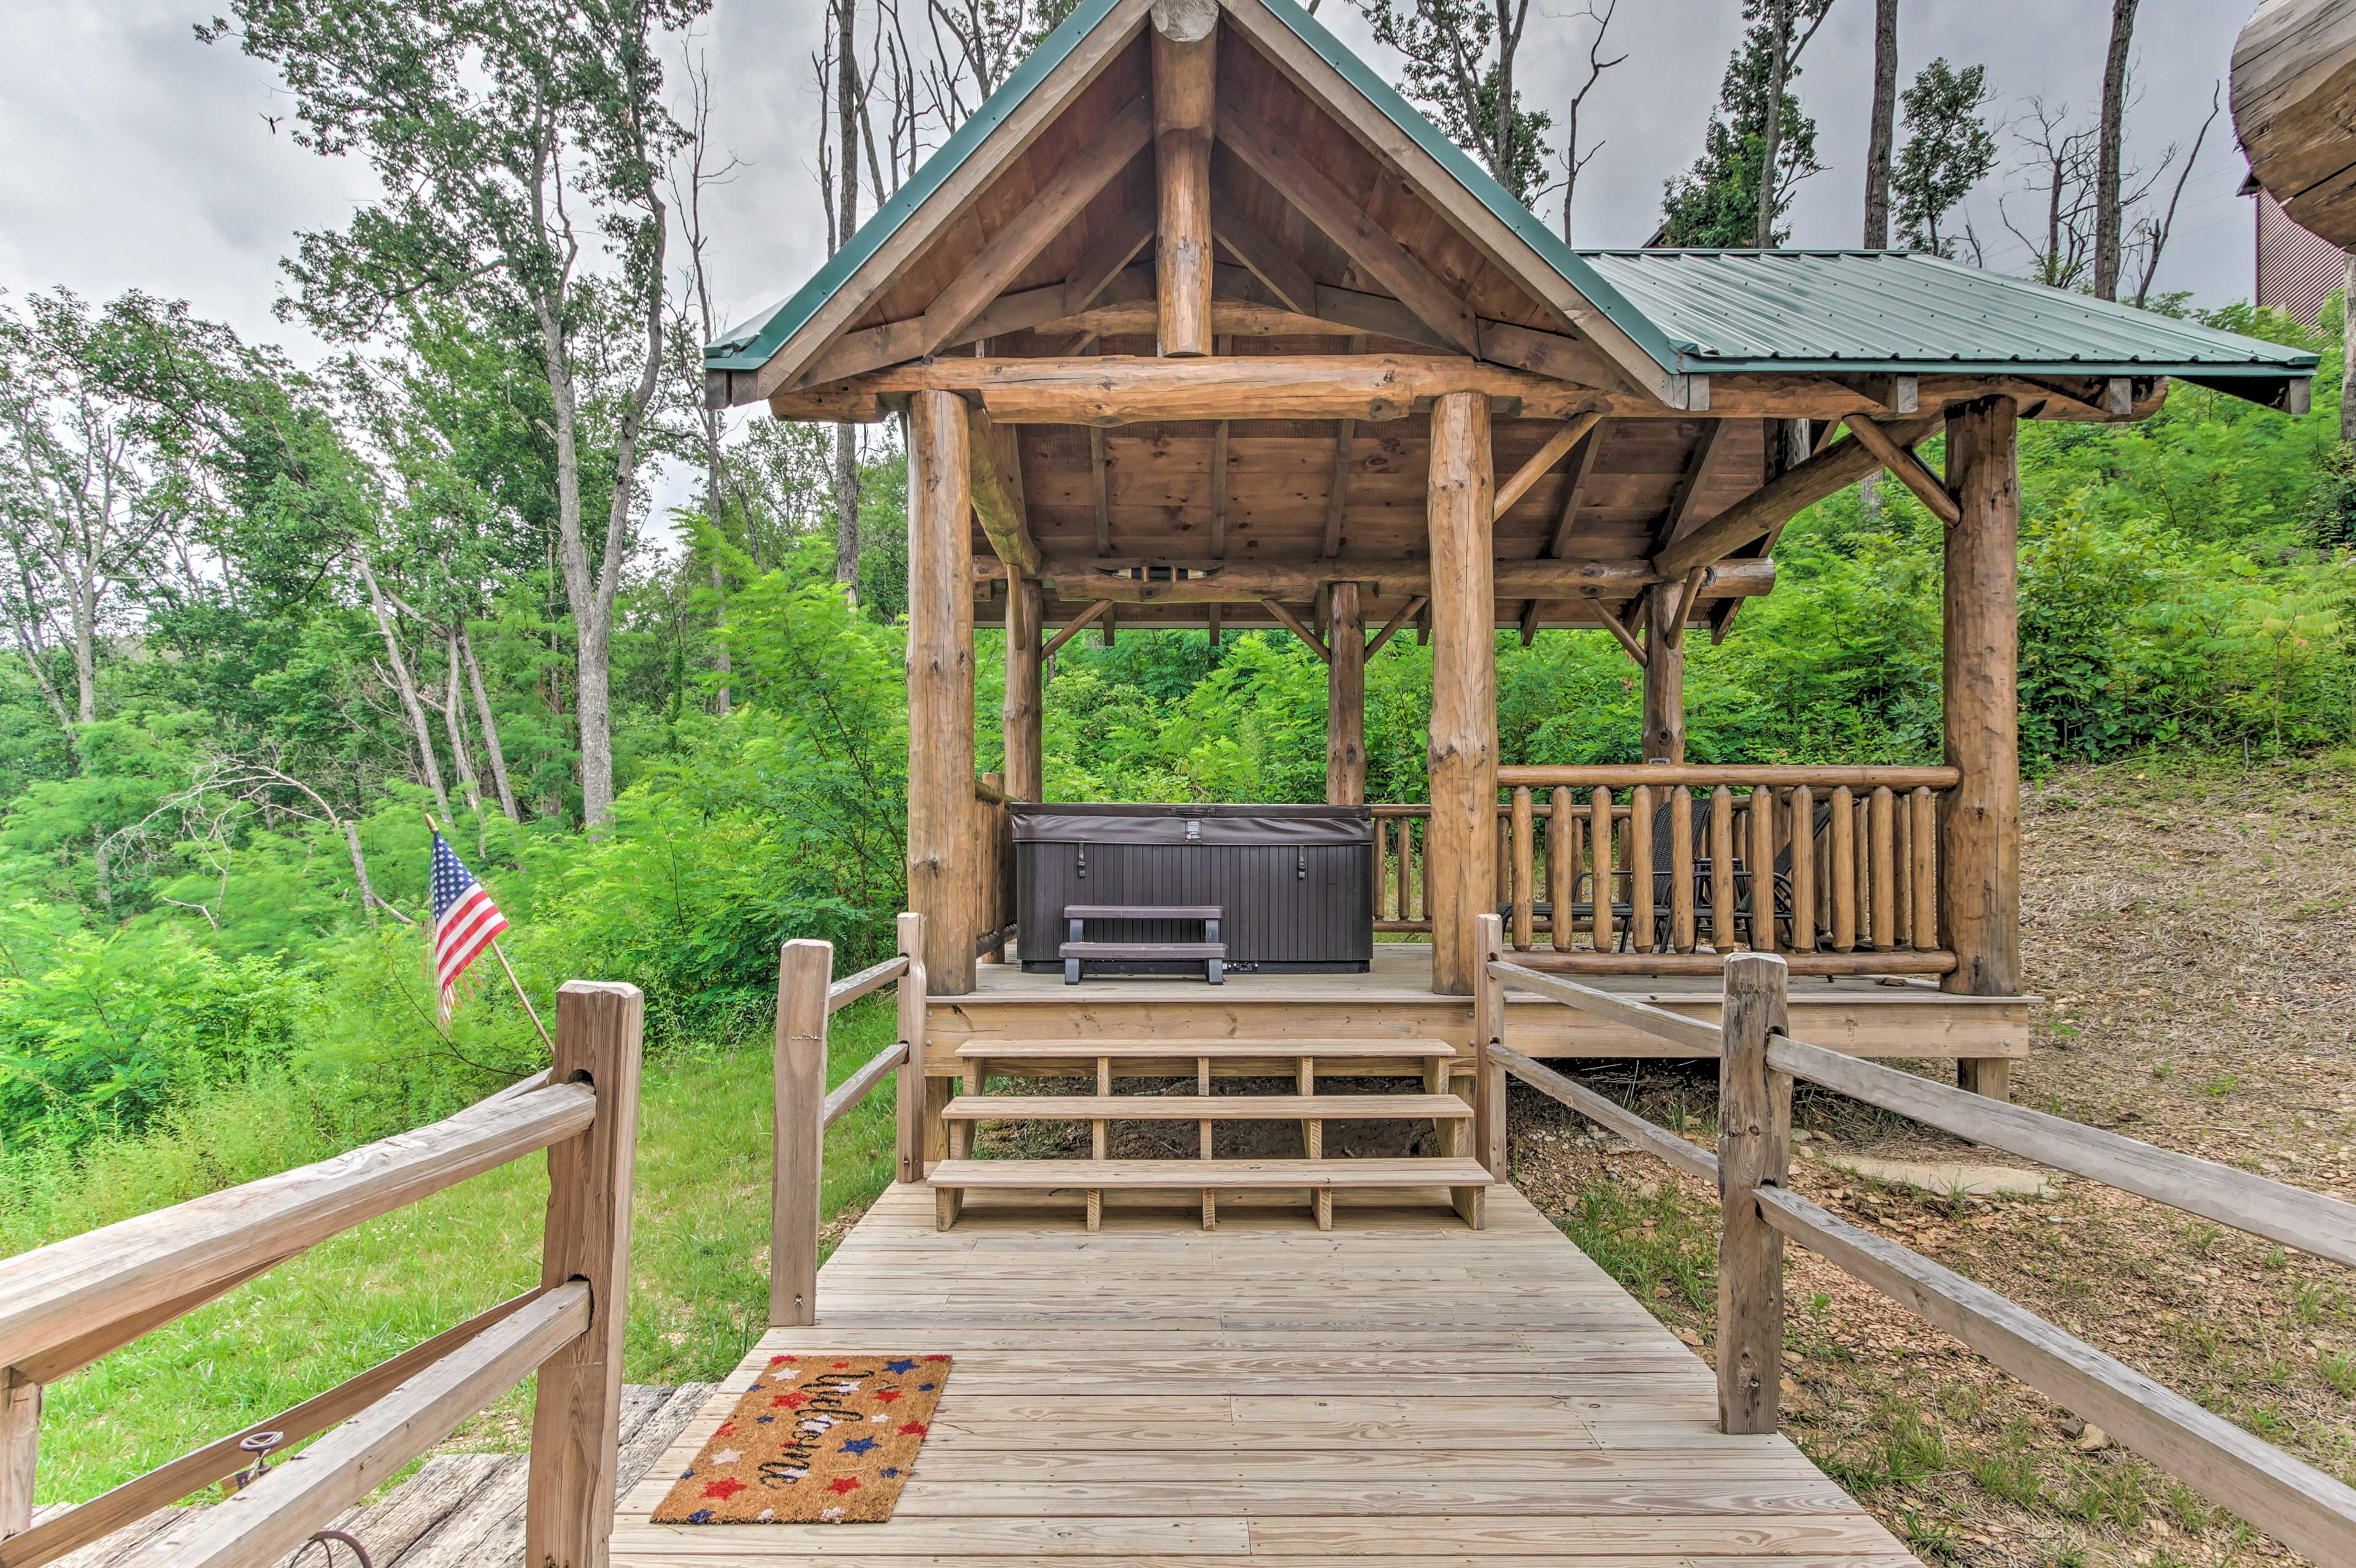 Step over to the gazebo for a dip in the hot tub.